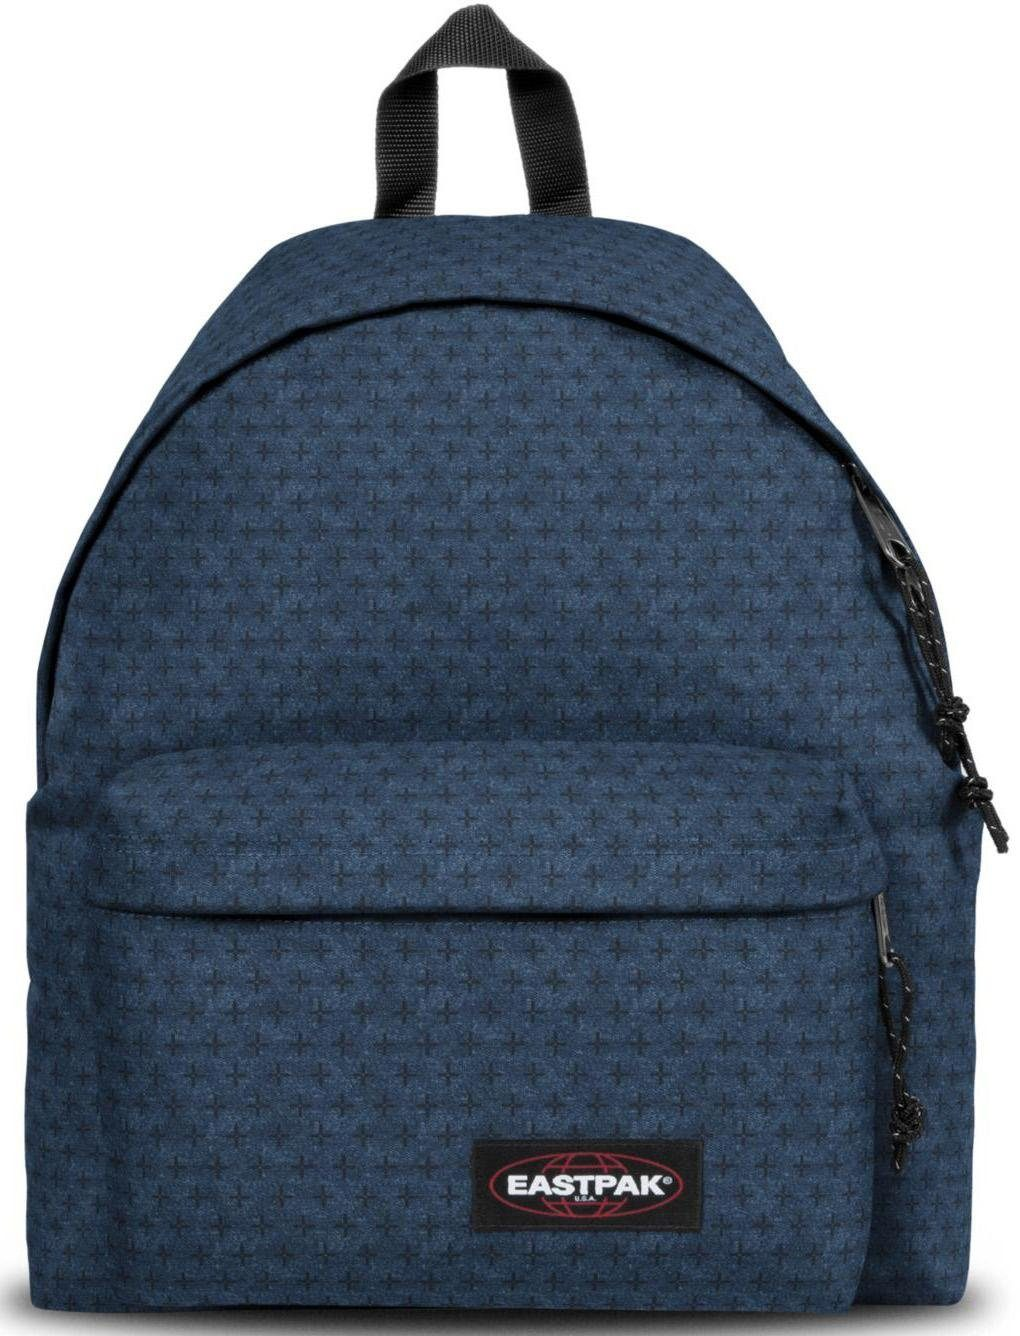 Eastpak Rucksack, »PADDED PAK'R stitch cross«